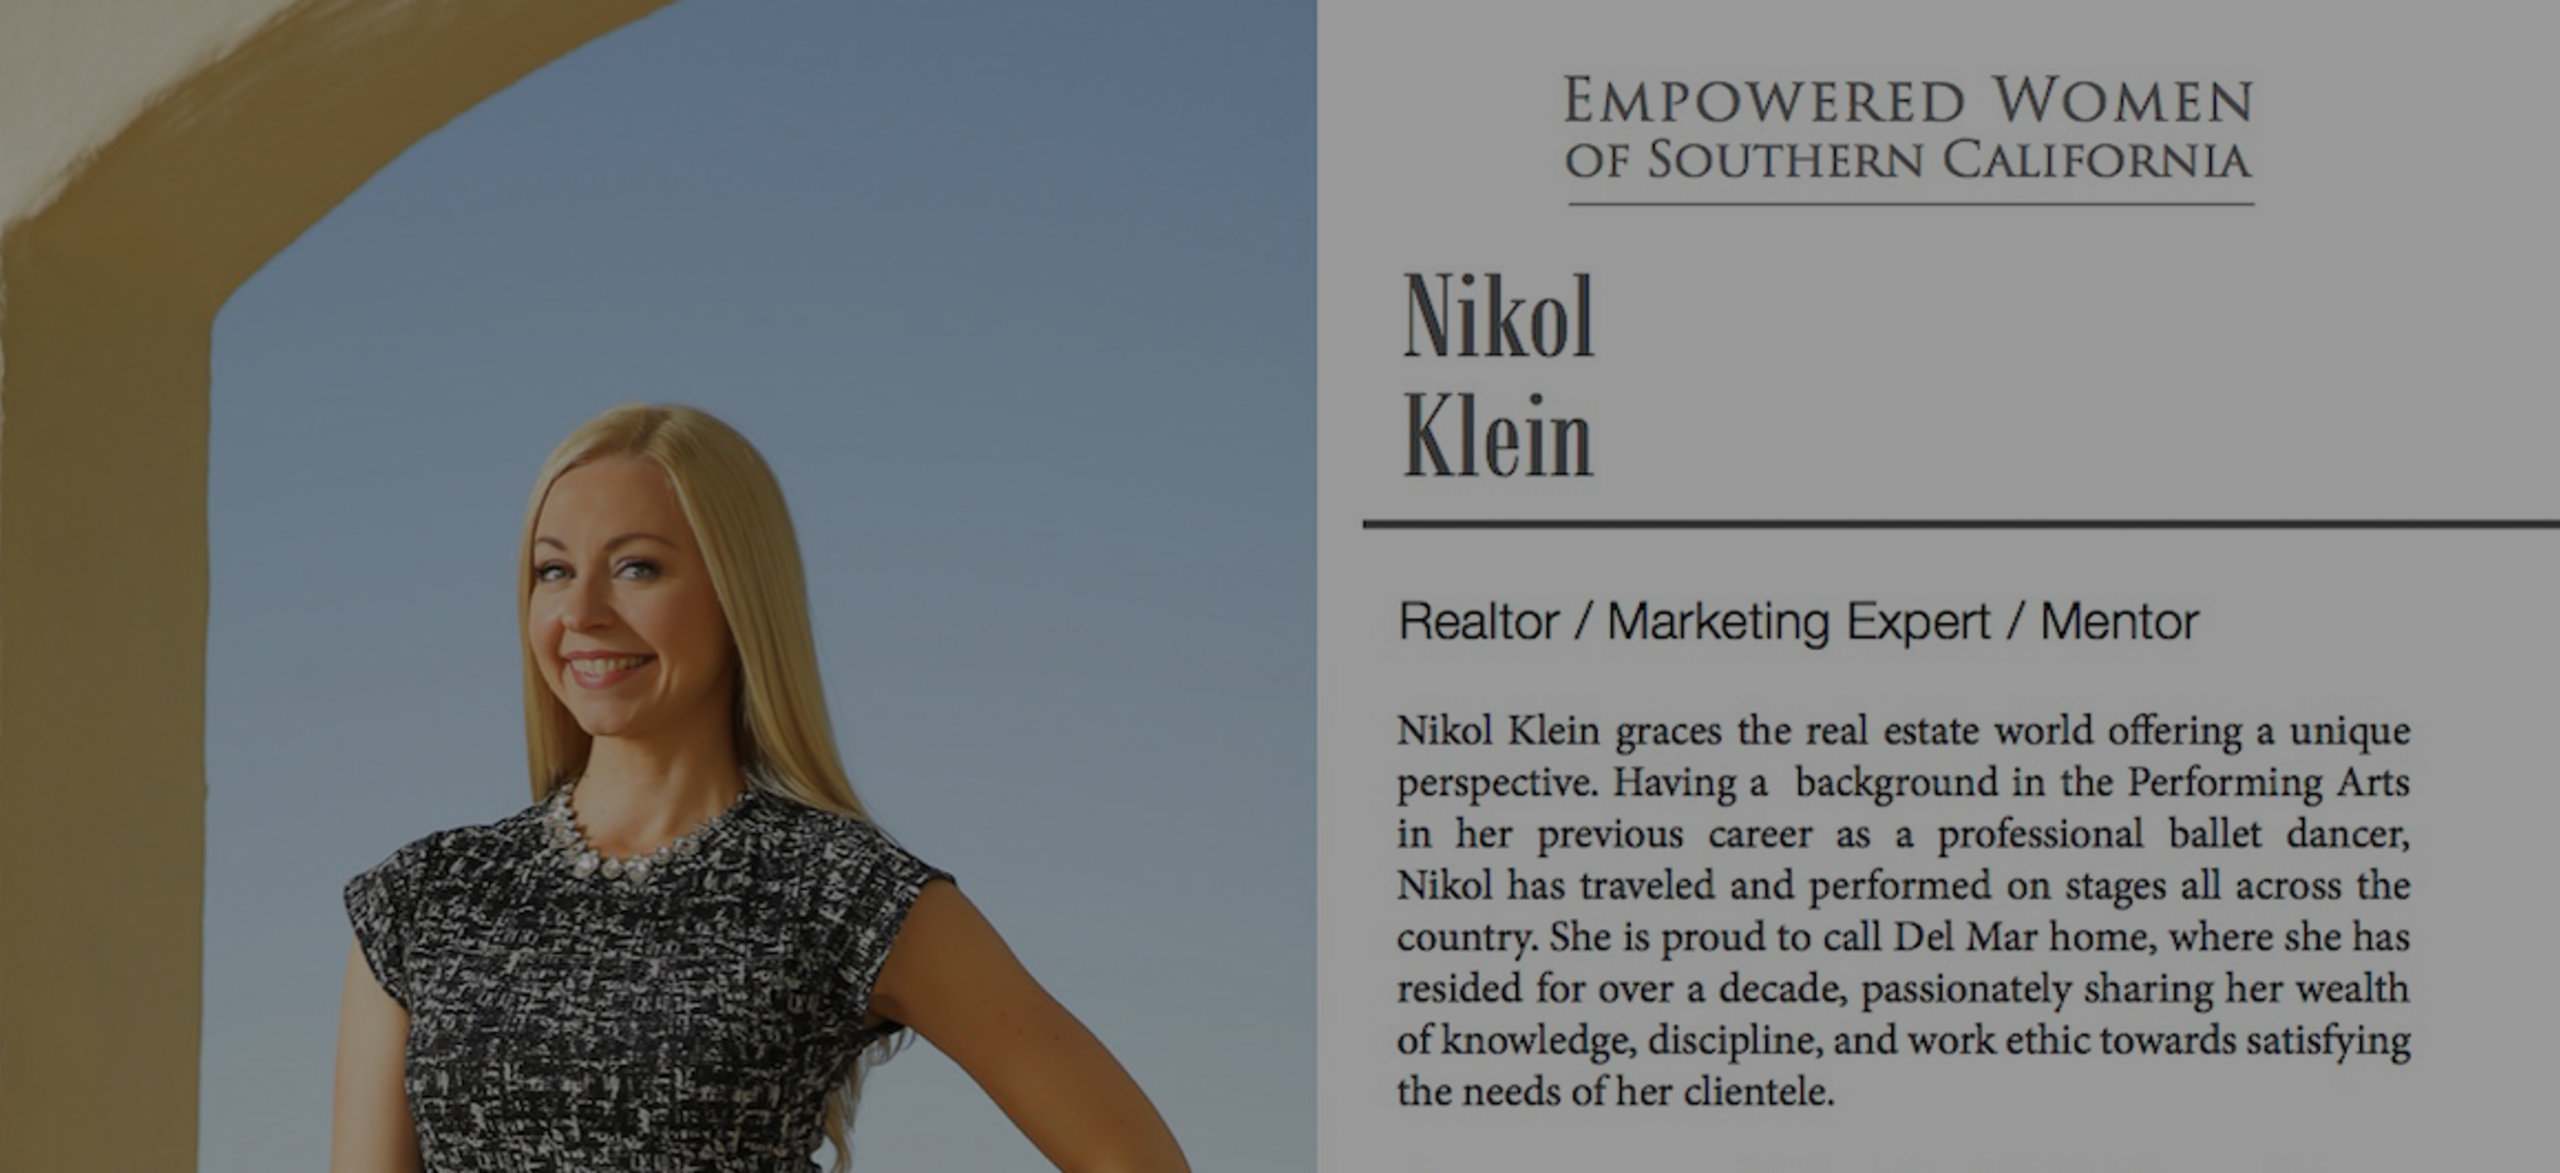 Nikol Featured in Empowered Women of Southern California